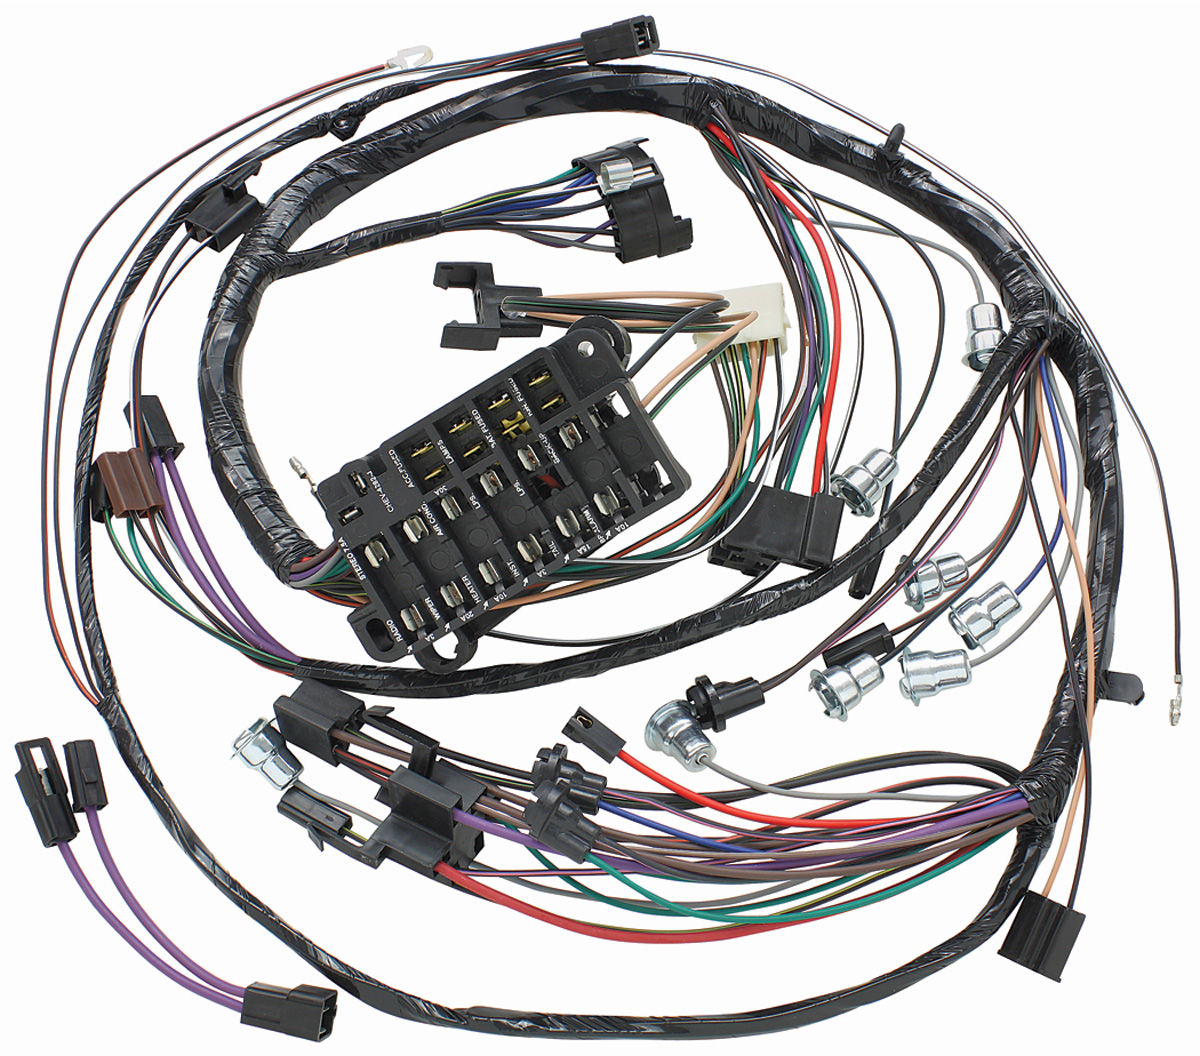 Wiring Harness, Dash, 1964 Chevelle/El Camino, Warning Lights @ OPGI.comOriginal Parts Group